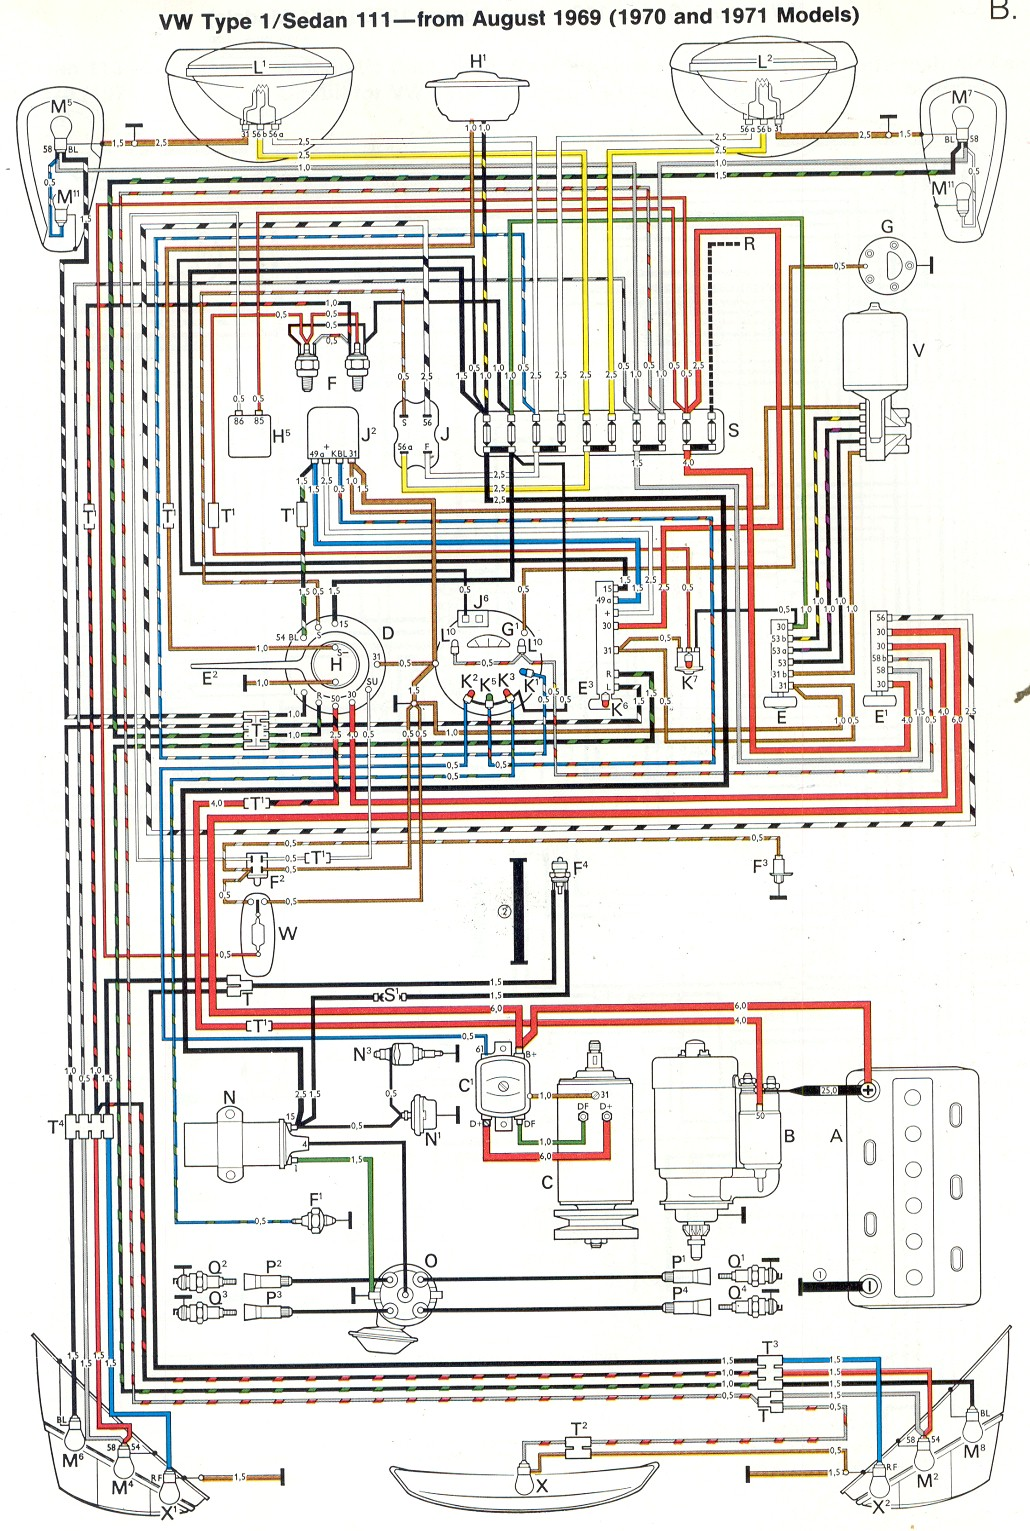 1970 beetle wiring diagram 2 way switch pdf 1973 vw bug harness 19 stromoeko de 1999 manual e books rh made4dogs 1972